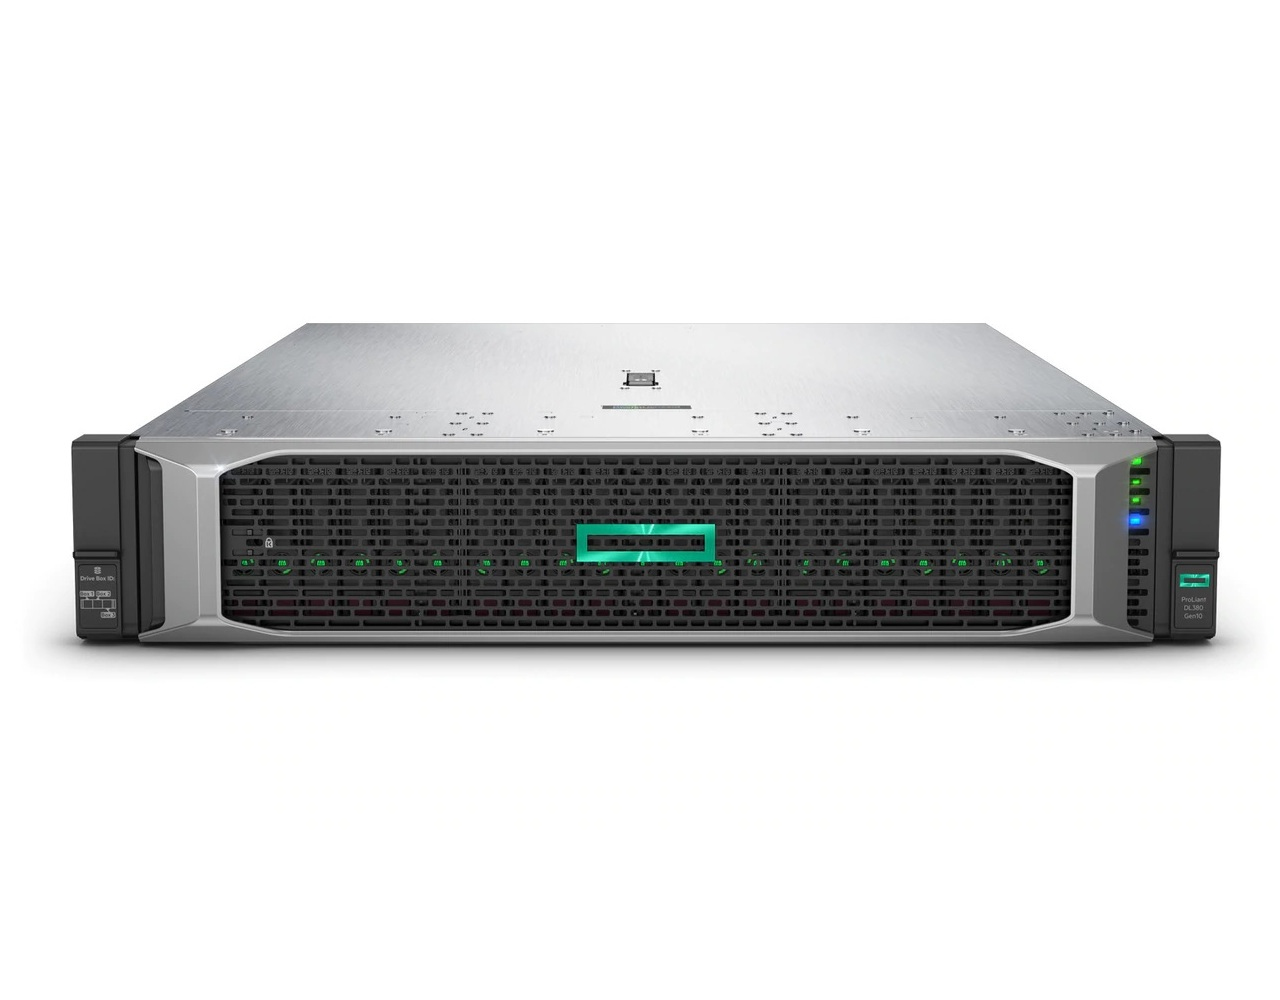 hewlett packard enterprise proliant dl380 gen10 4210 8sff perf ww server 2 2 ghz intel xeon silver rack 2u 800 w p b21